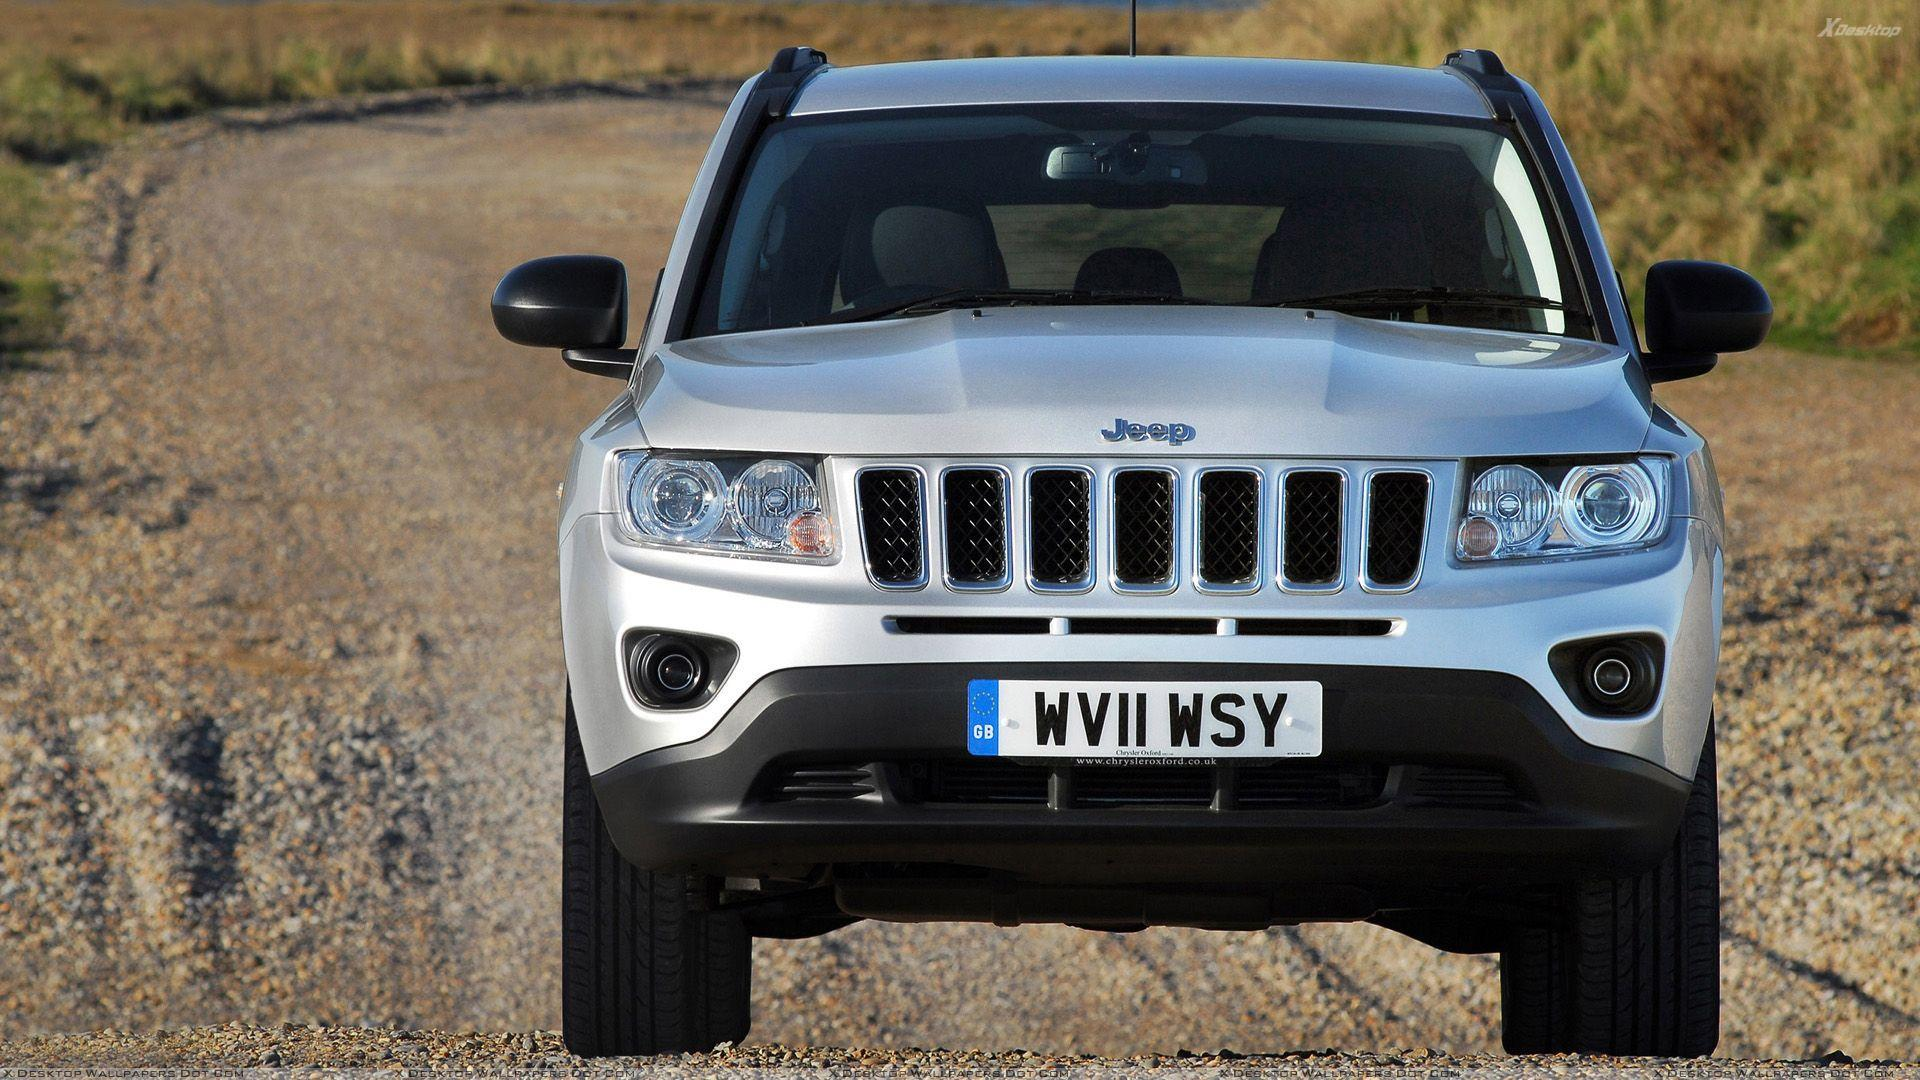 Jeep Compass Wallpapers, Photos & Image in HD